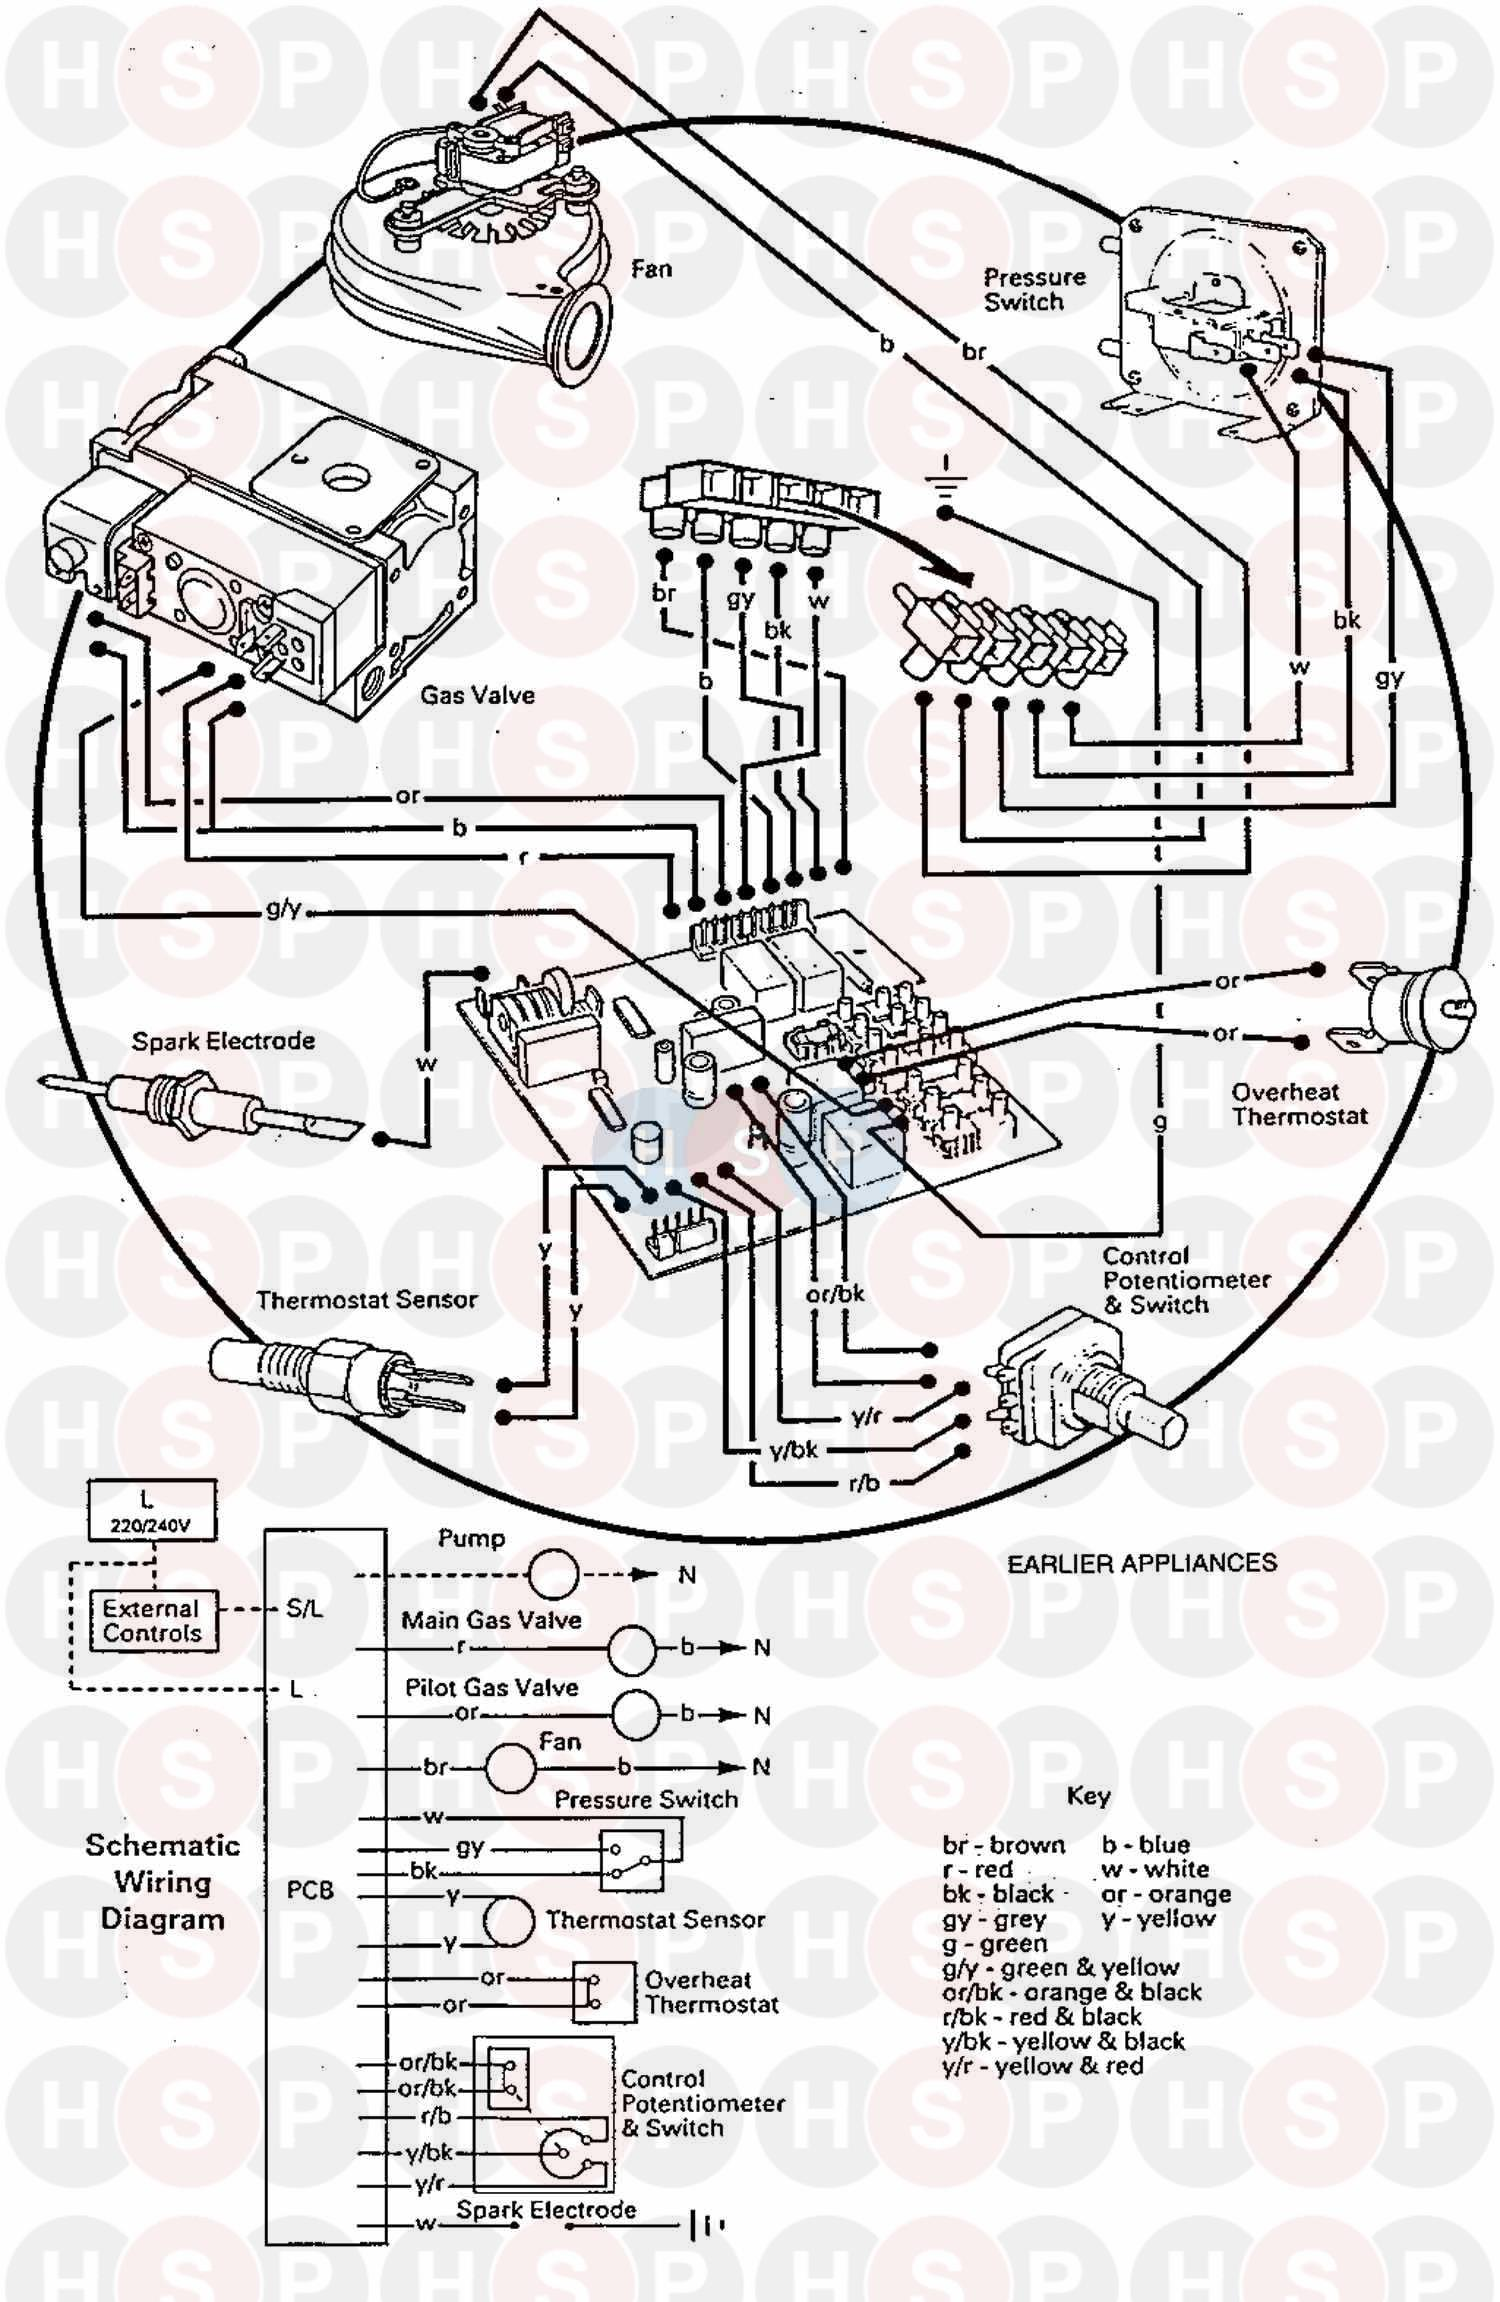 Baxi Solo Pf 2 60  Wiring Diagram  Earlier Applia  Diagram